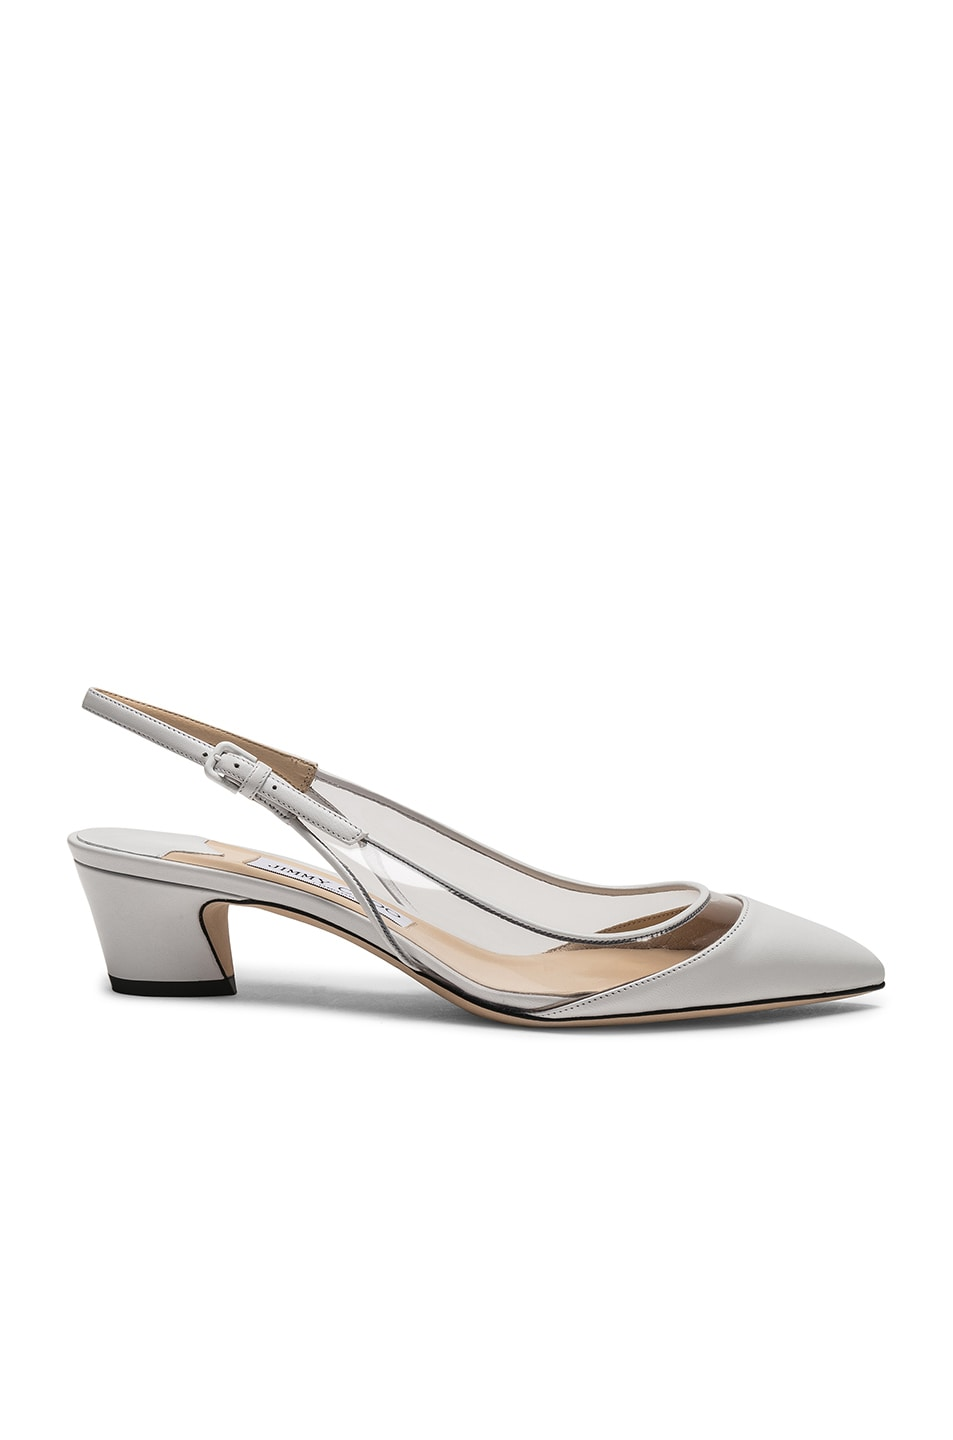 Image 1 of Jimmy Choo Gemma 40 Leather Plexi Slingback in White & Clear